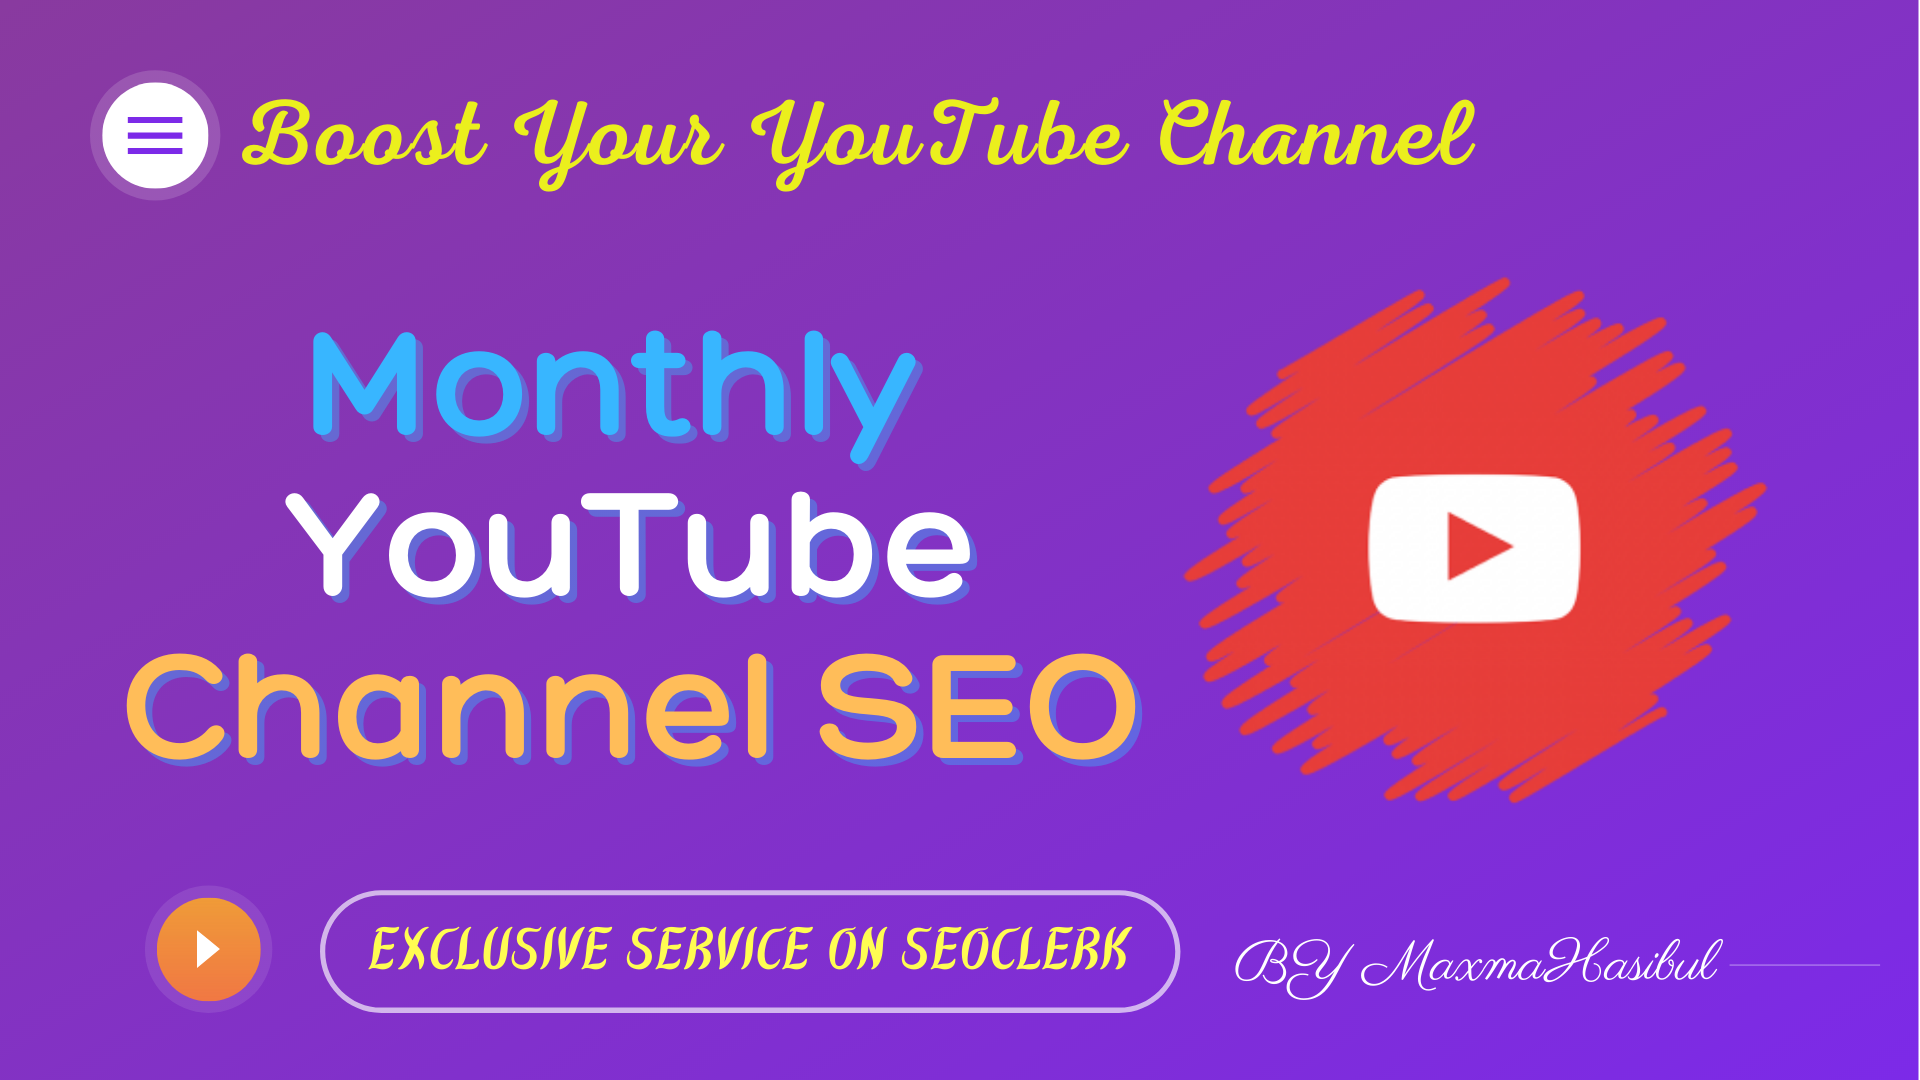 I'll Be Your YouTube SEO Manager For a Calendar Month Monthly YouTube SEO